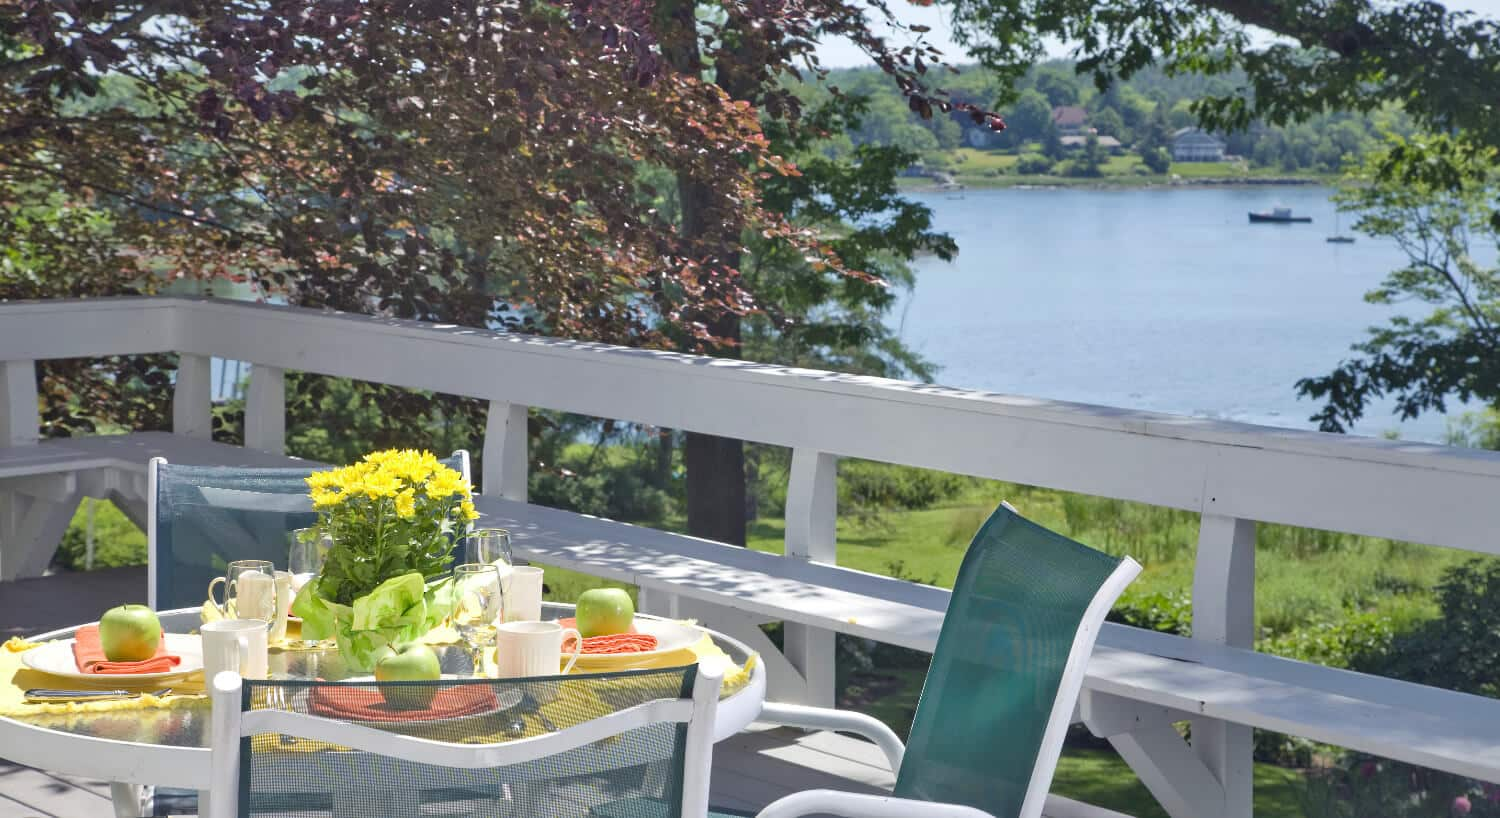 Small table and chairs on a deck set for breakfast.